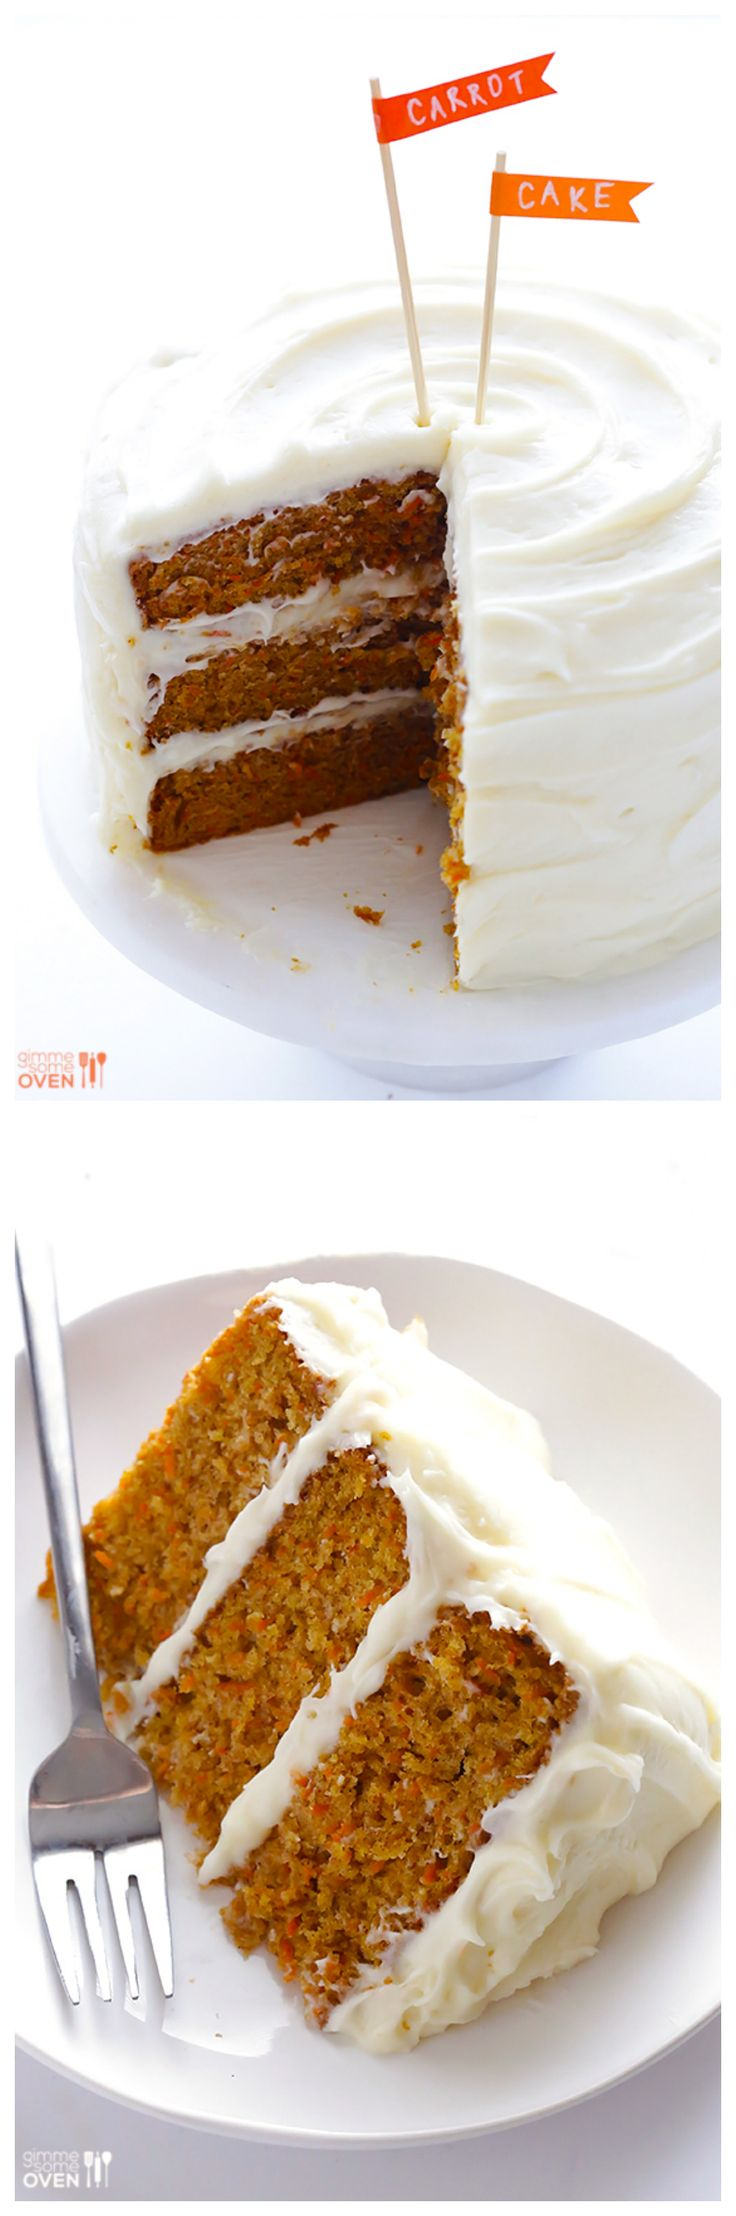 The BEST Carrot Cake: it's moist, delicious, and topped with a heavenly cream cheese frosting | gimmesomeoven.com